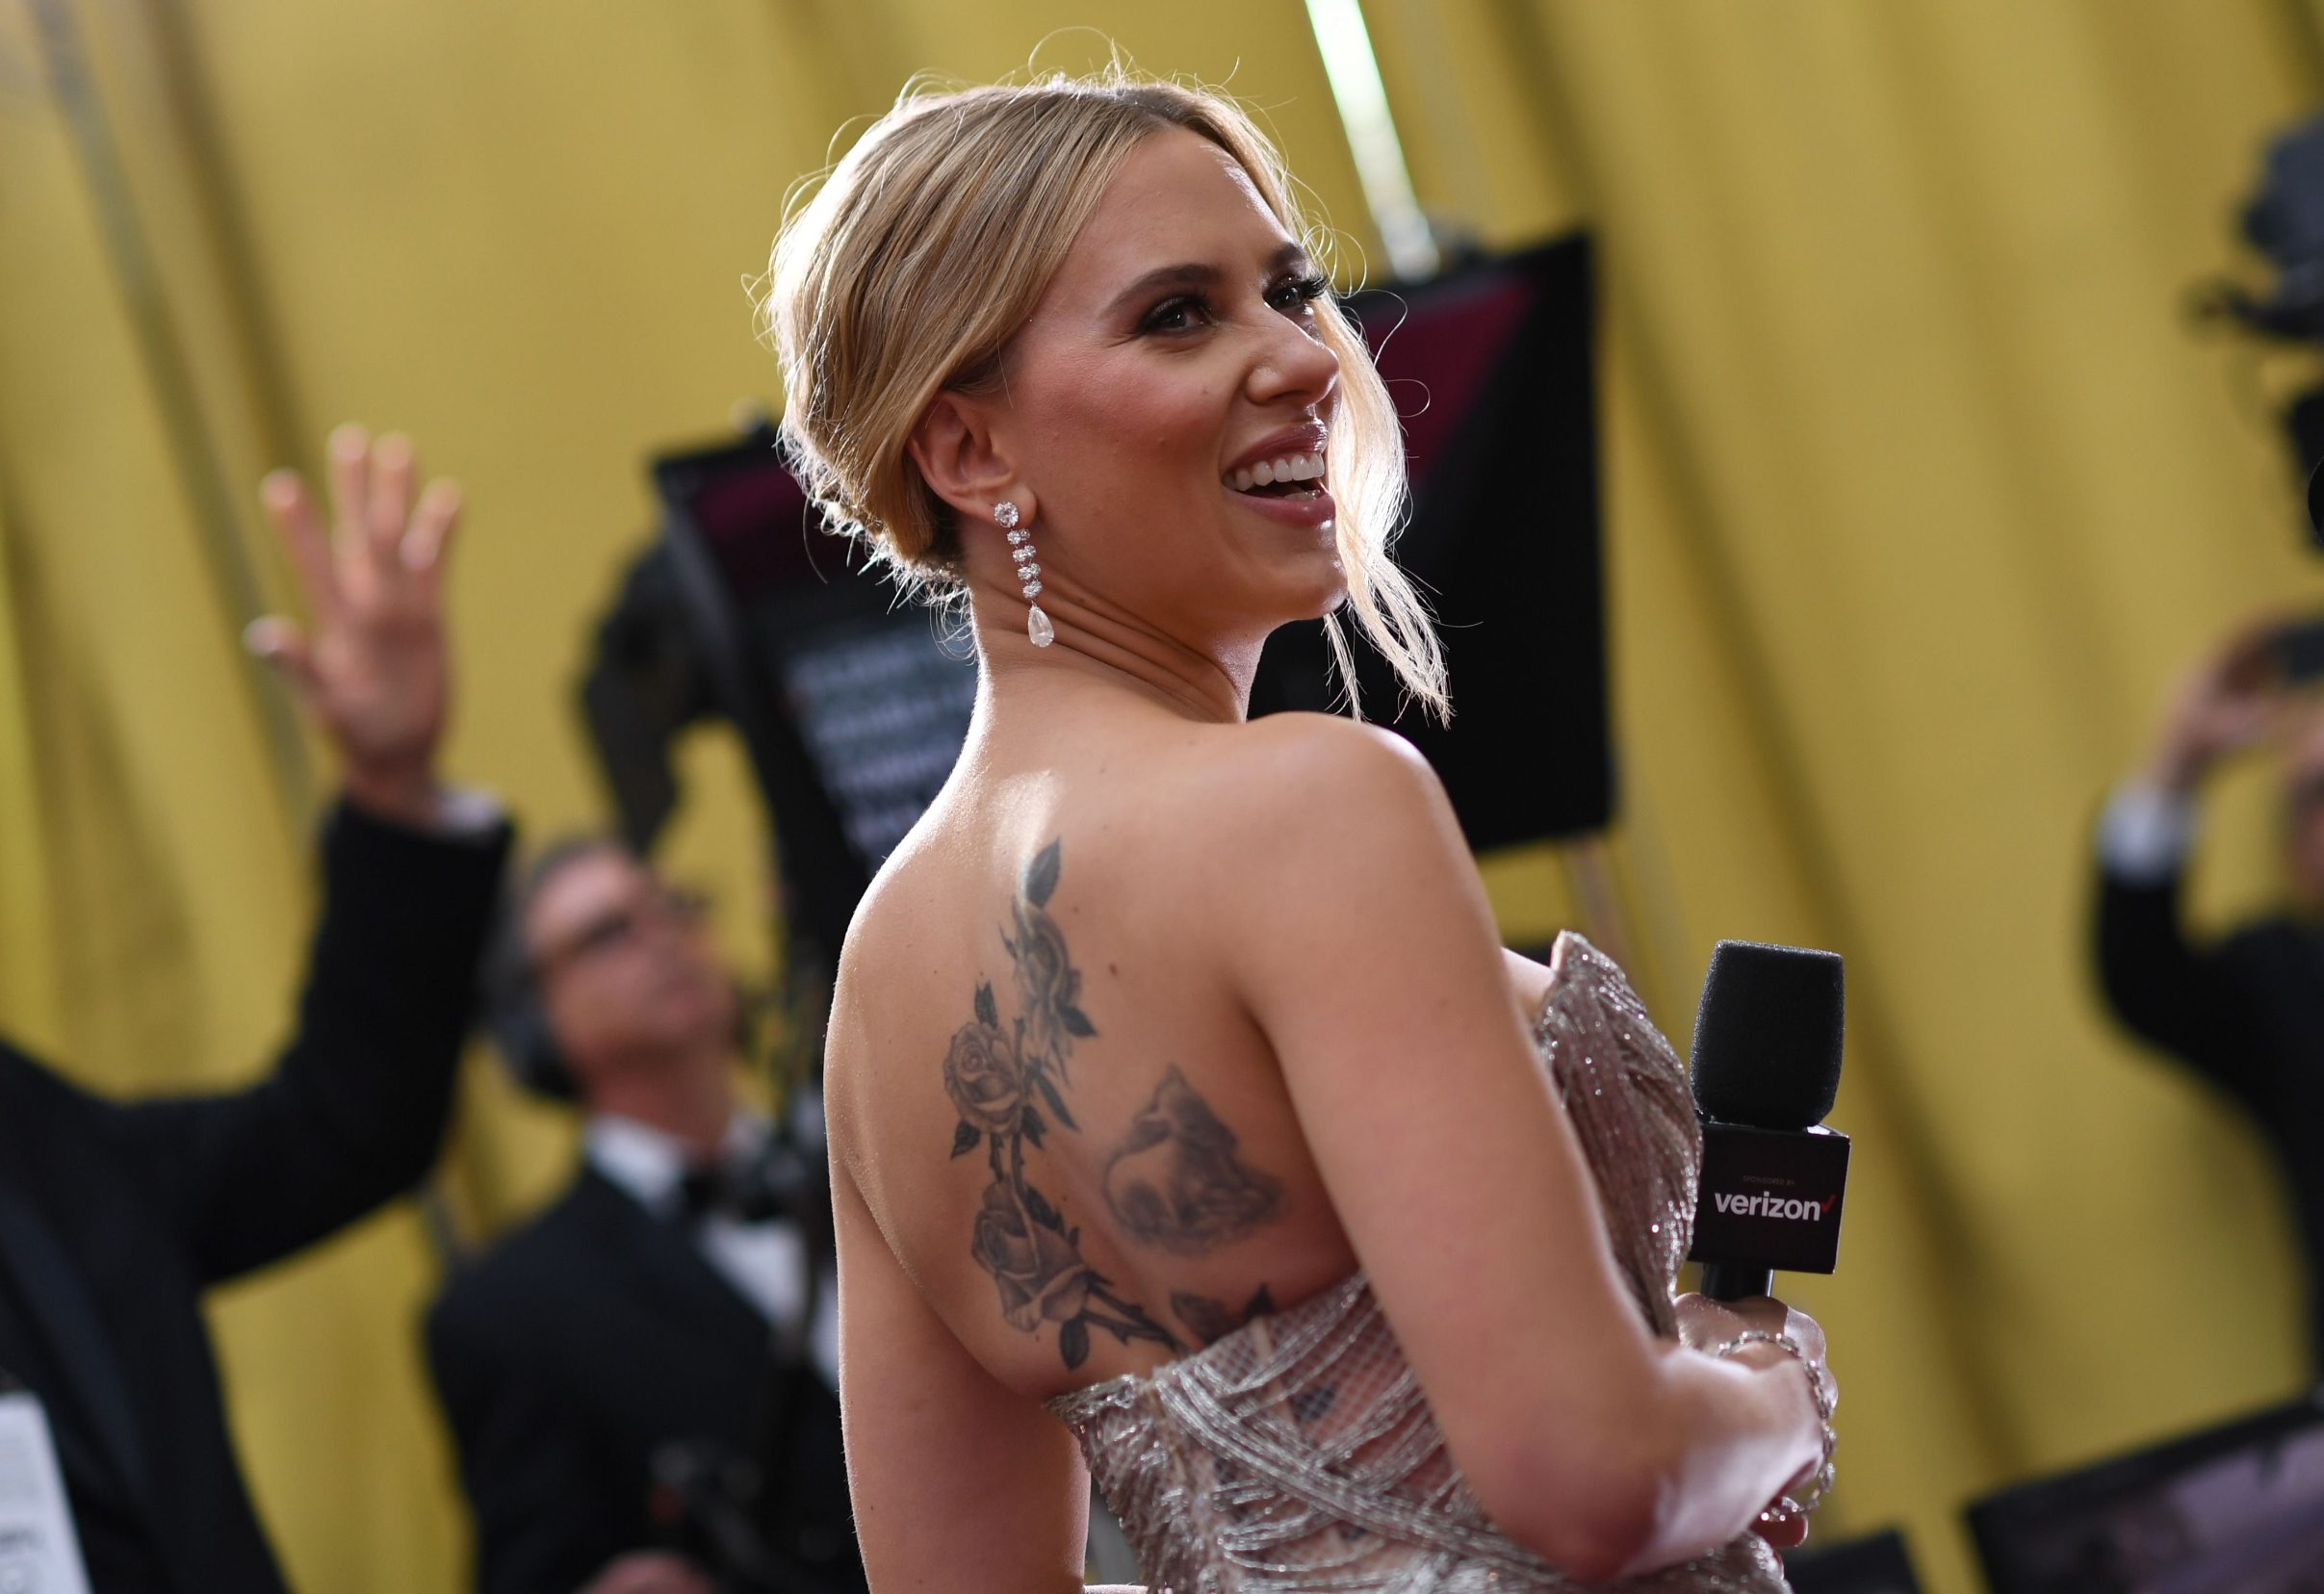 US actress Scarlett Johansson arrives for the 92nd Oscars at the Dolby Theatre in Hollywood, California on February 9, 2020. (Photo by VALERIE MACON / AFP)